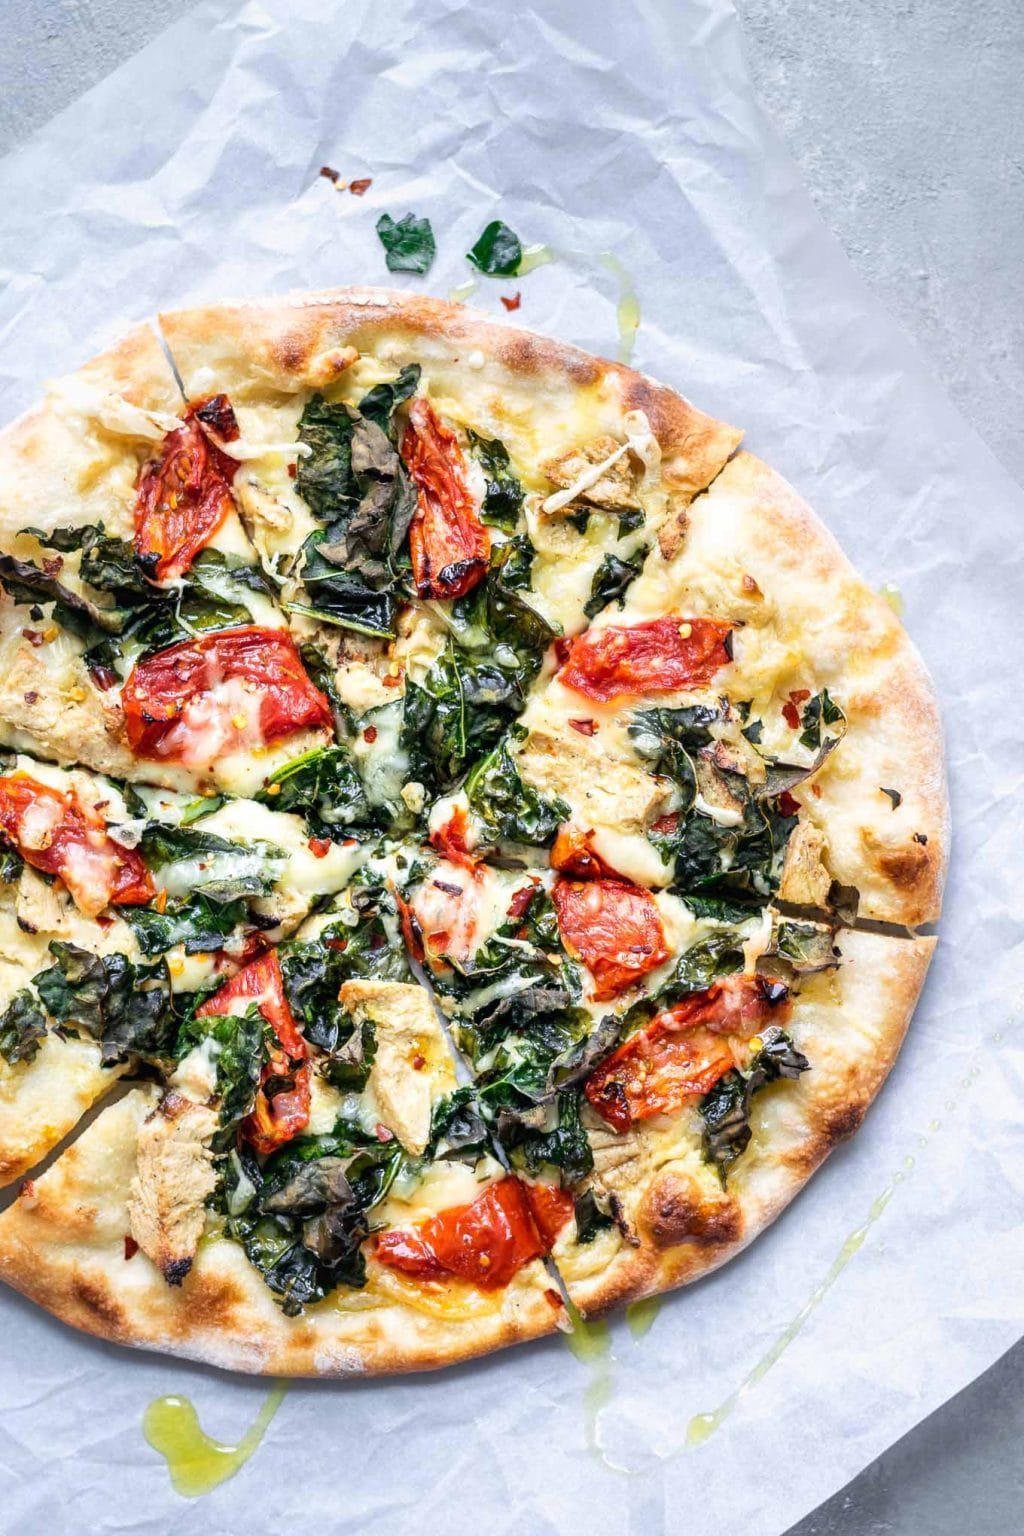 Crispy Kale, Roasted Tomato, and Vegan Chicken White Sauce Pizza